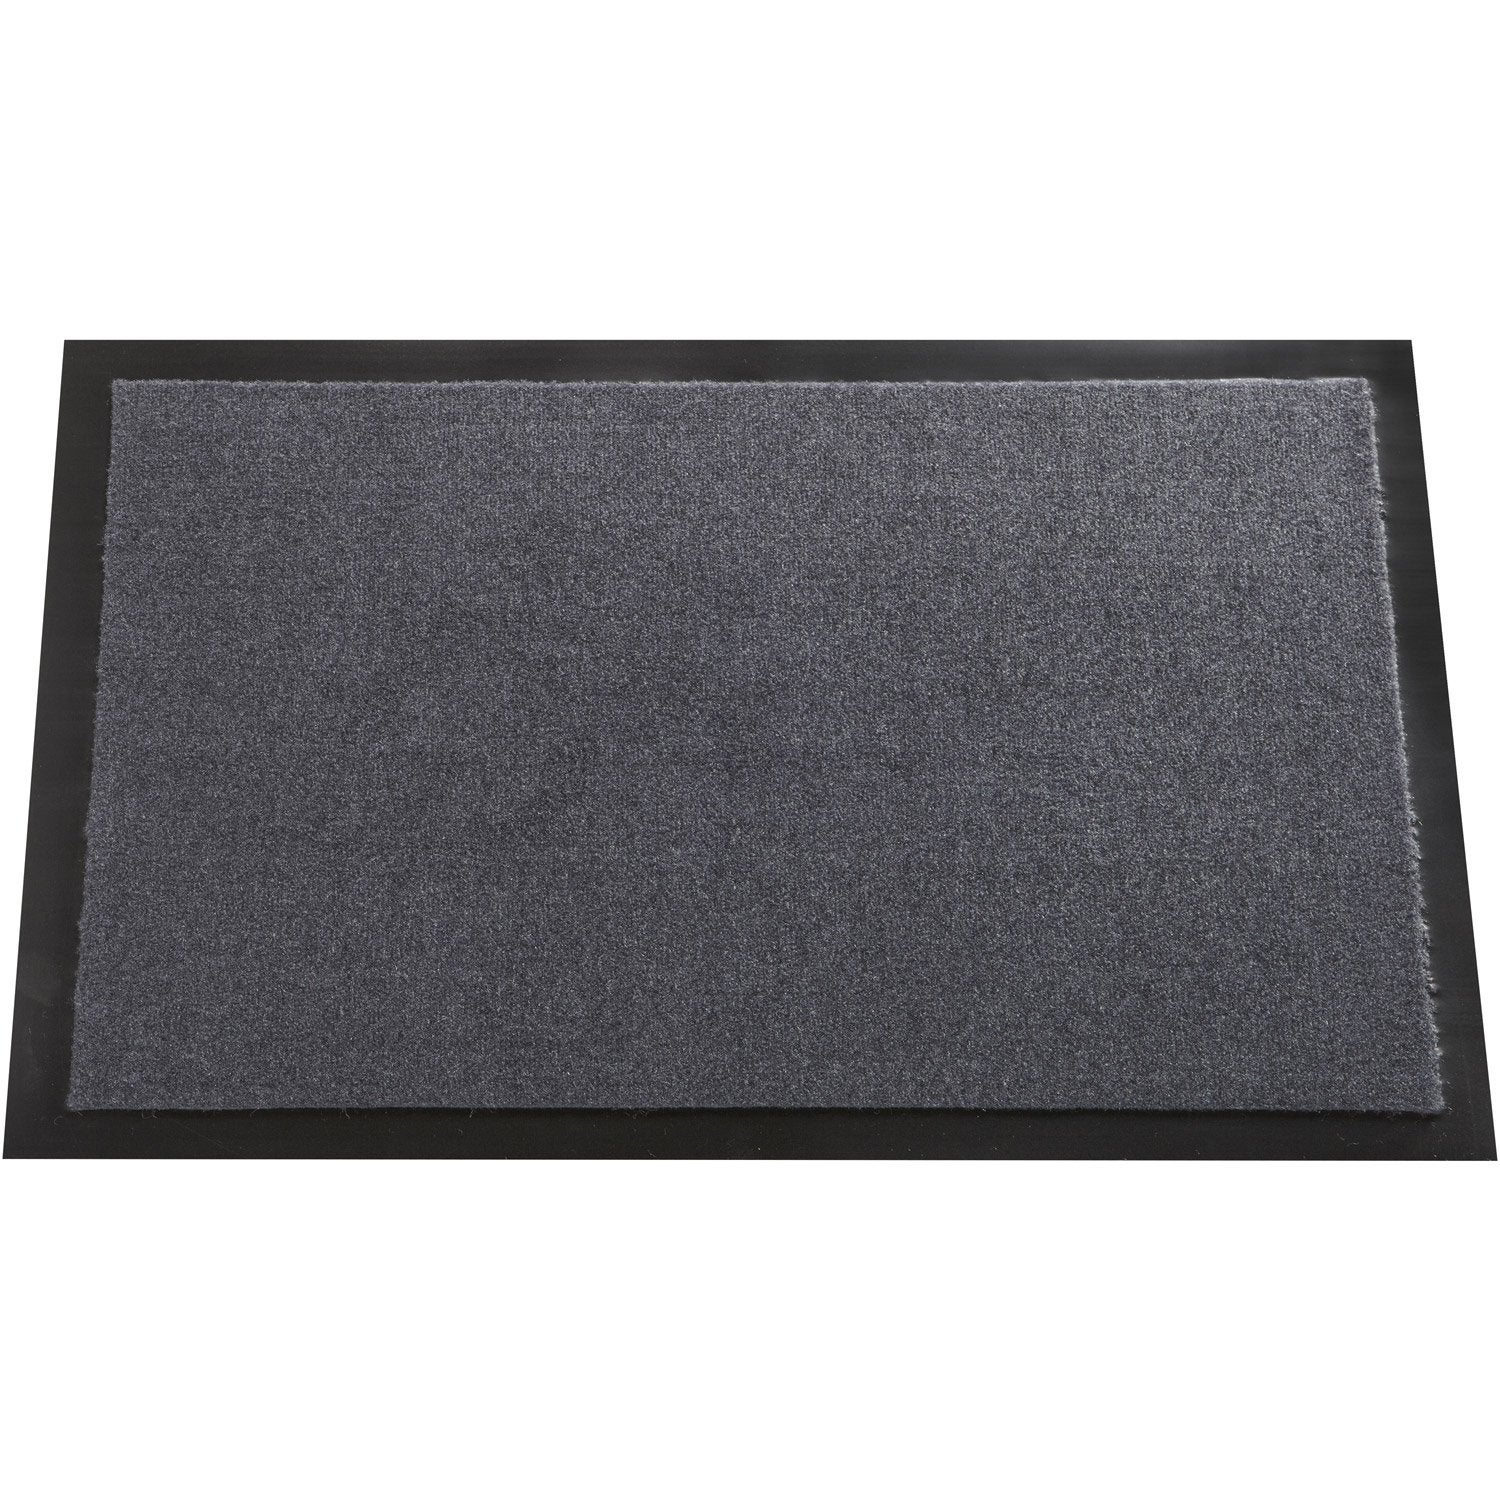 tapis antipoussi re mood gris galet n 1 60 x 40 cm leroy merlin. Black Bedroom Furniture Sets. Home Design Ideas